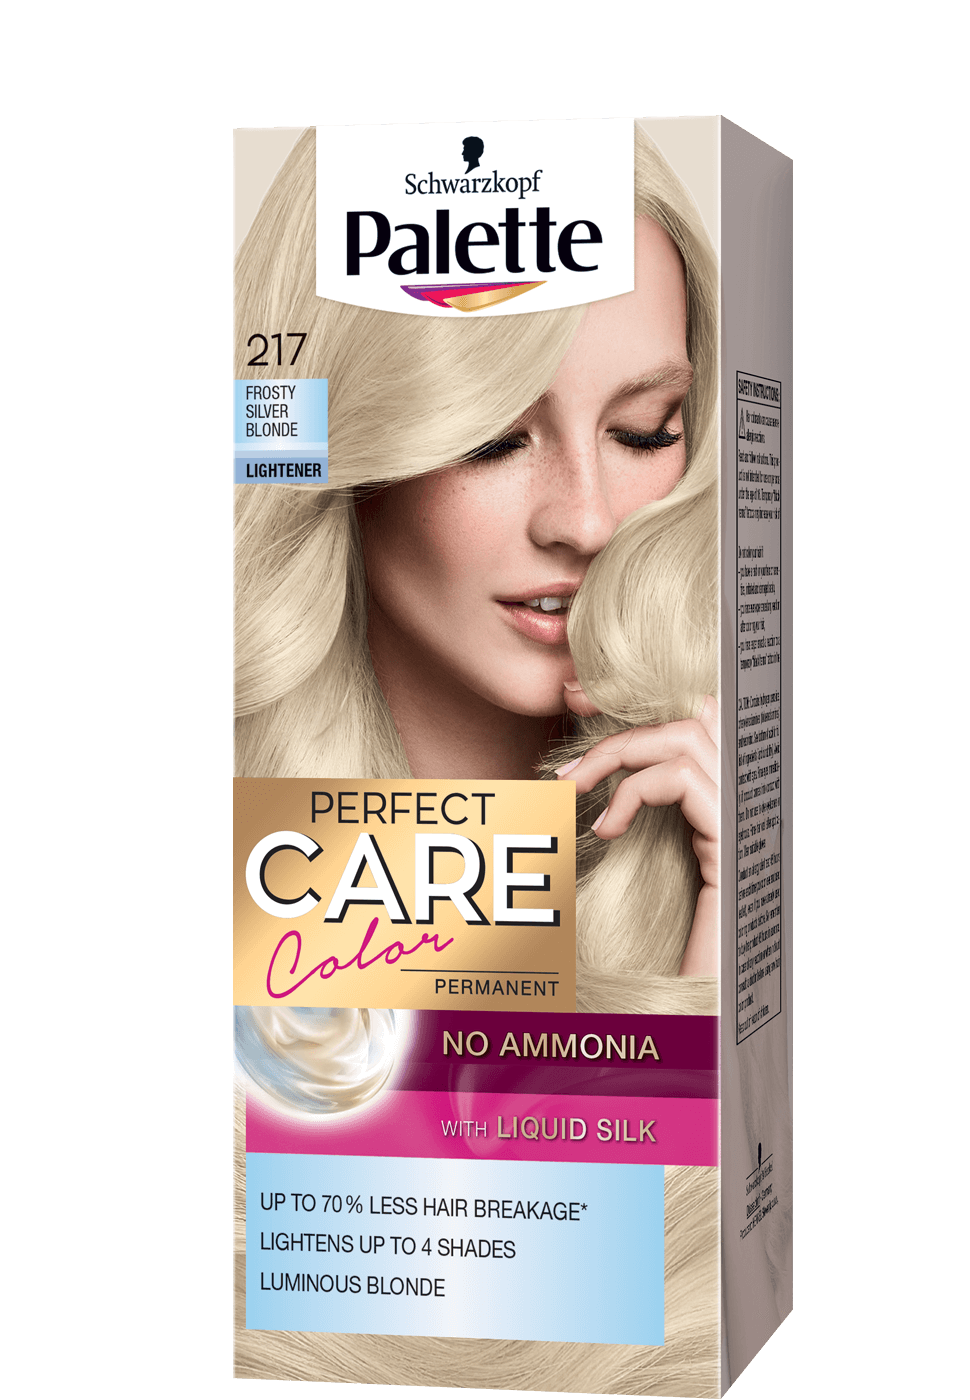 palette_com_perfect_care_lightener_217_frosty_silver_blonde_970x1400